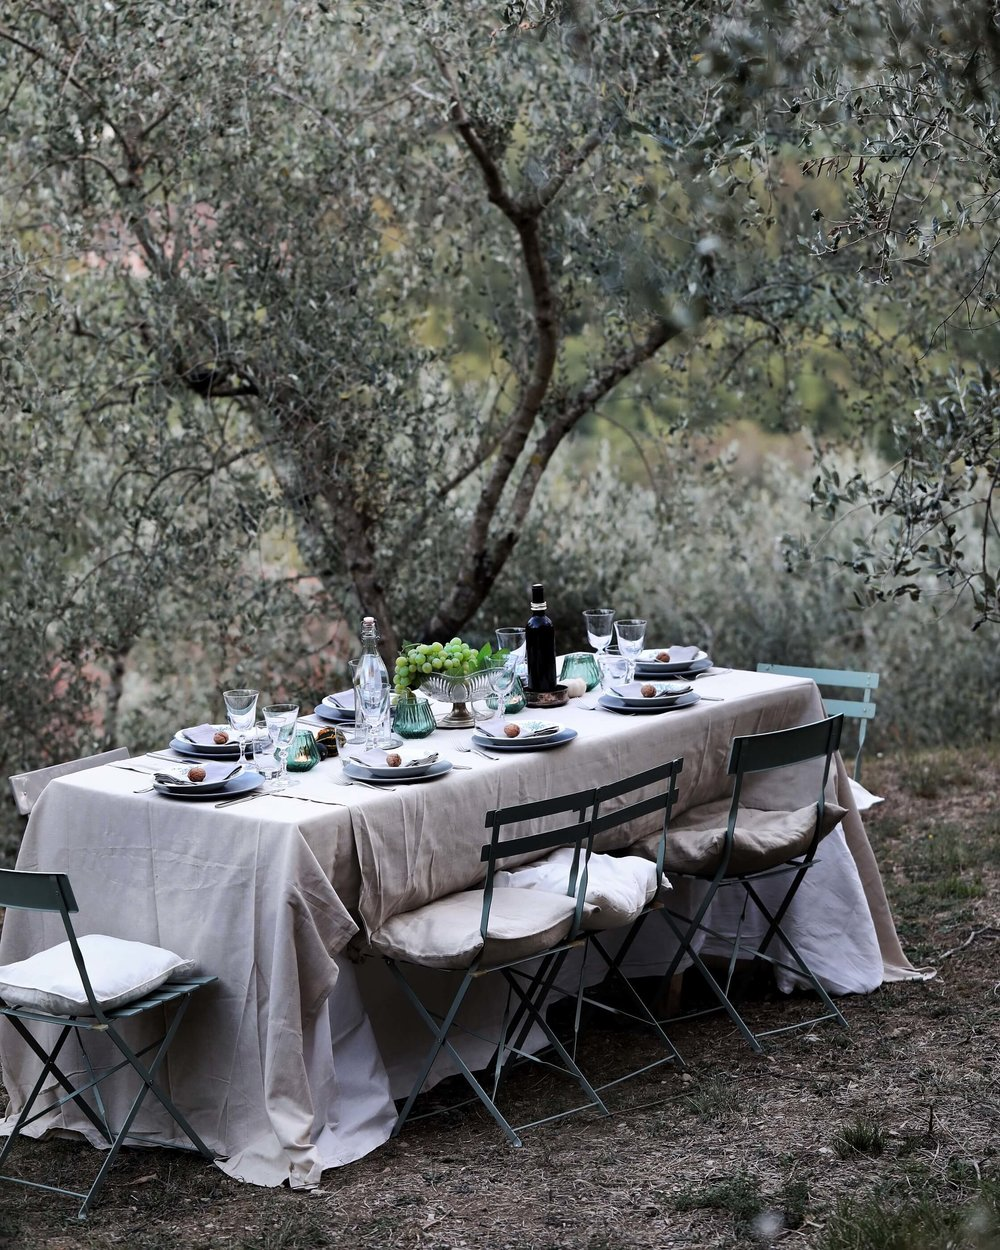 TUSCANY / ITALY  October 2019 (exact dates will soon be announced)  'A HARVEST GATHERING'  4-day retreat around harvest, fall feasts, cooking & photography More details will be released soon  This workshop will be released ultimo May 2019